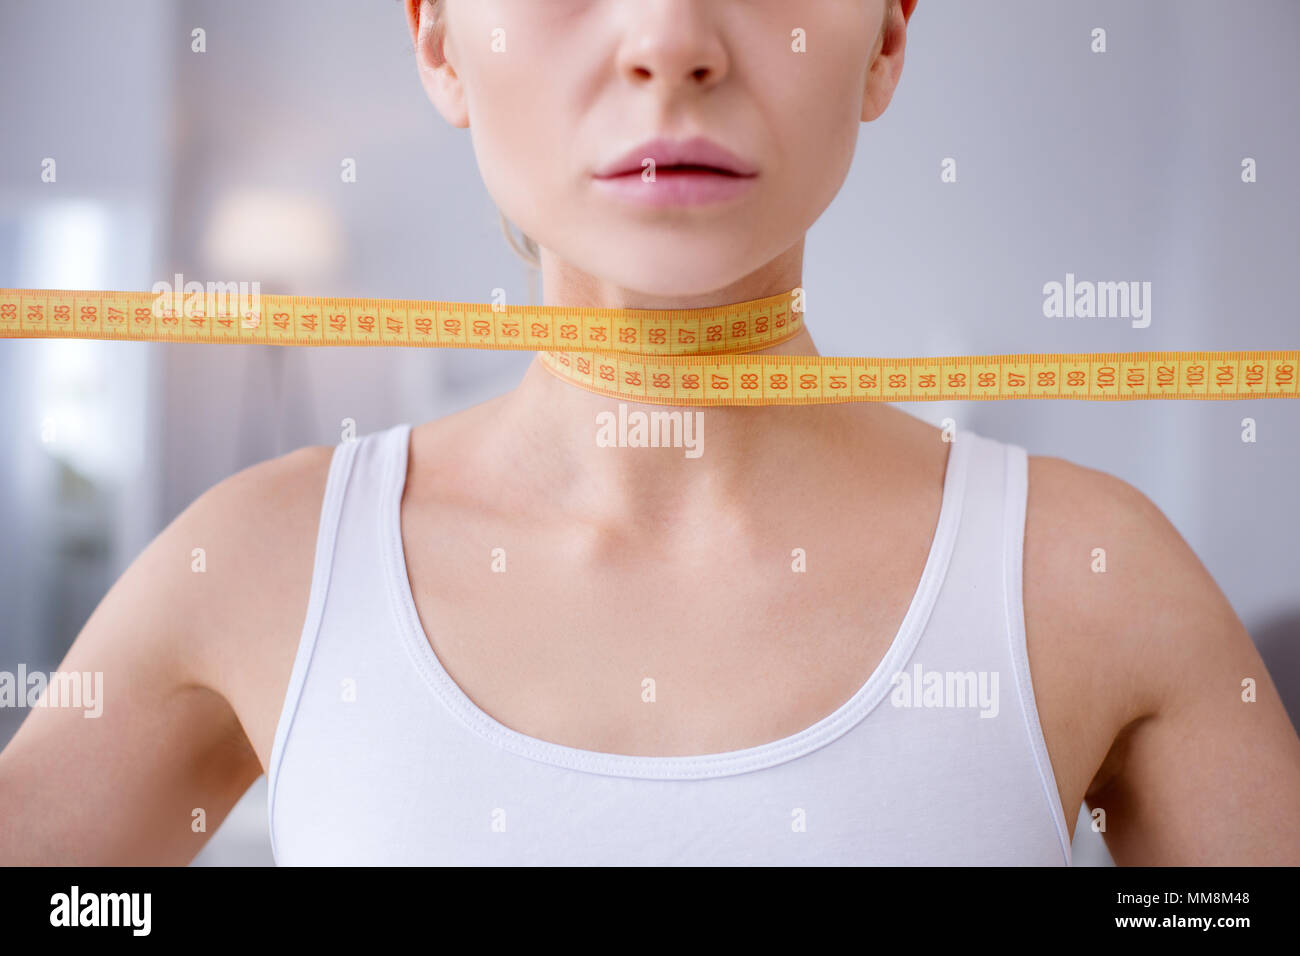 Close up of a female neck - Stock Image